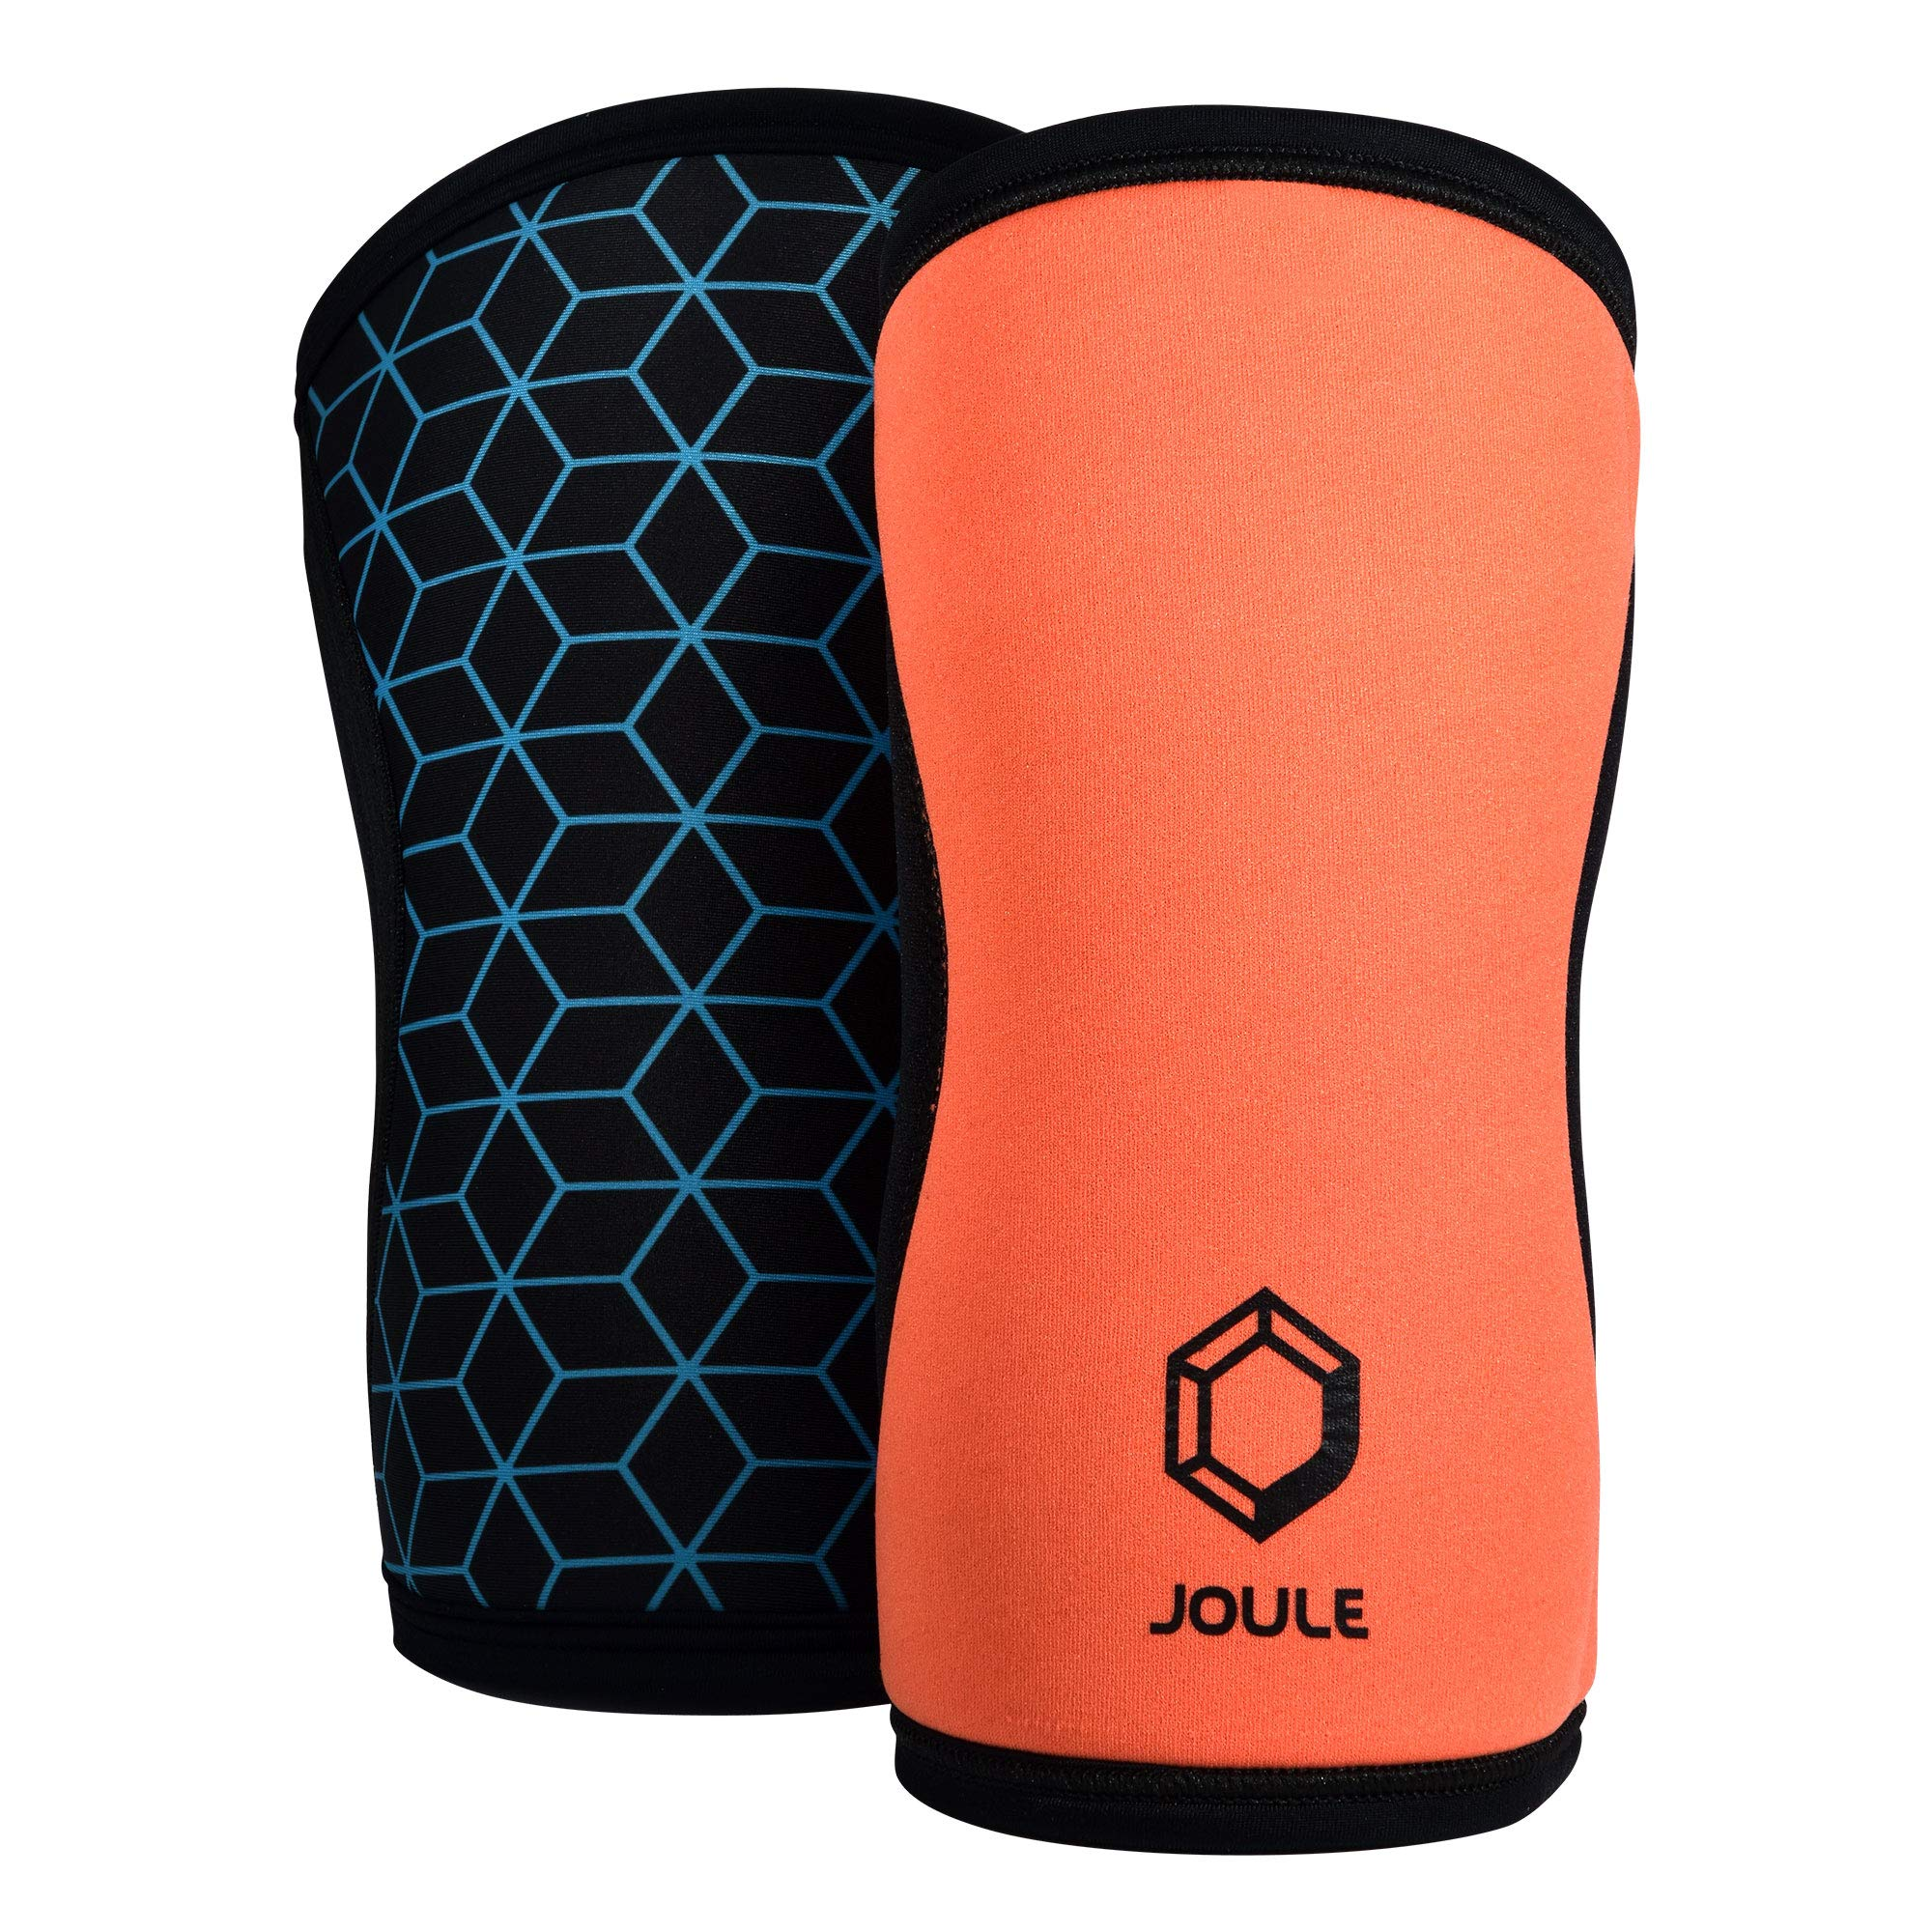 JOULE Active Reversible Knee Sleeve - 7mm Pair of 2 Neoprene Sleeves with Compression for Weightlifting, Powerlifting, and Crossfit - (Orange/Blue, X-Large)